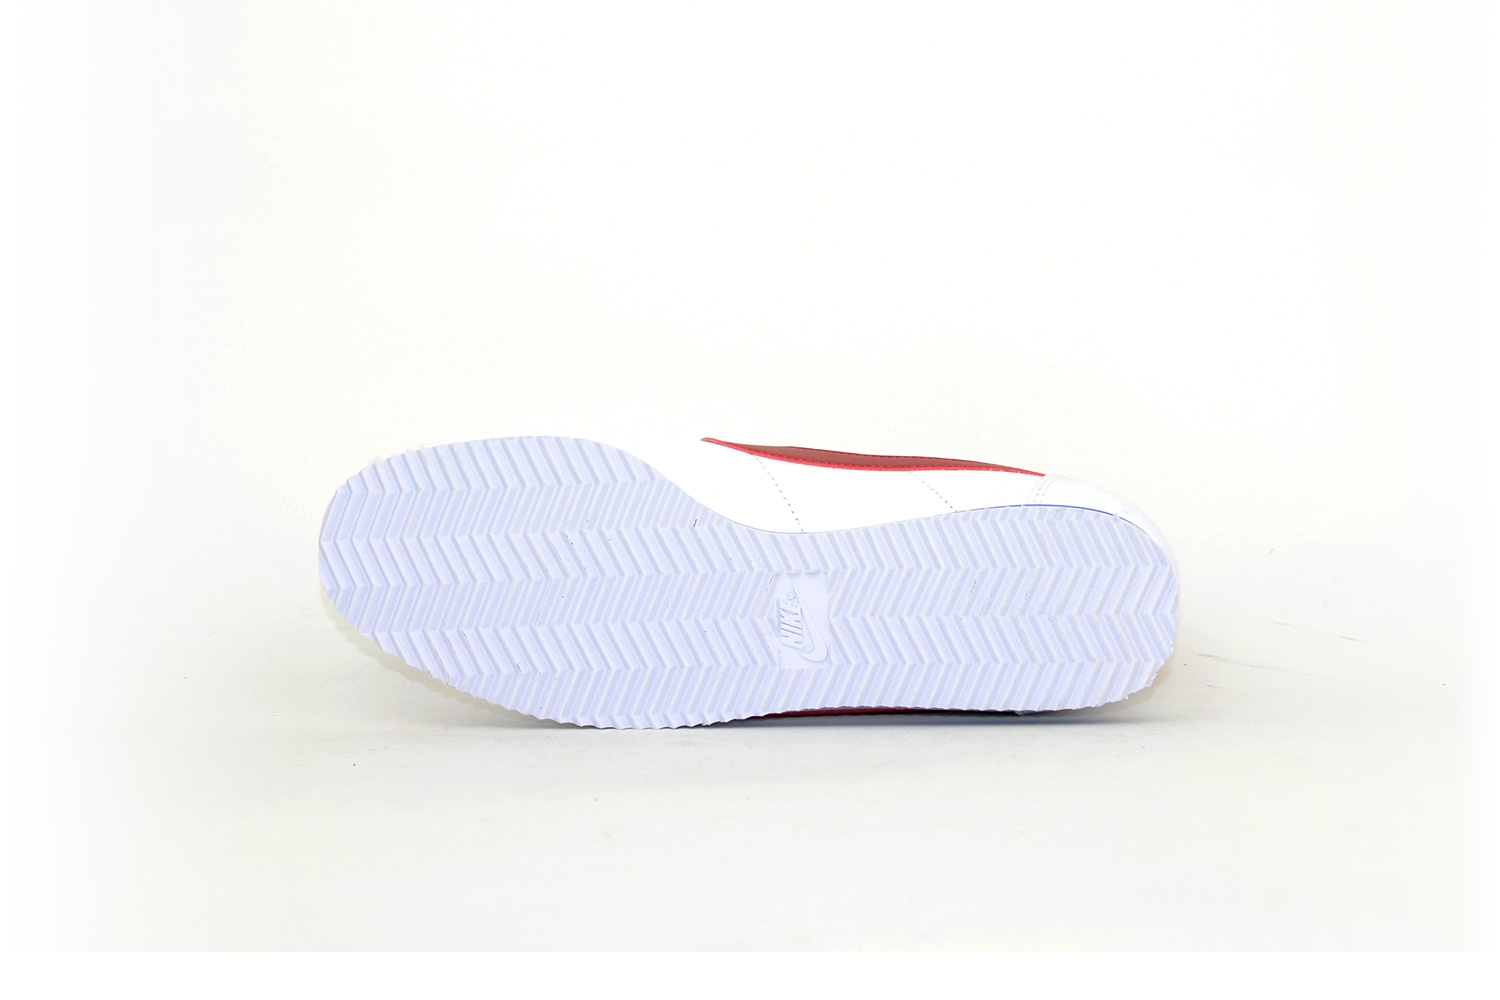 Nike Classic Cortez Leather white / red weiß / rot